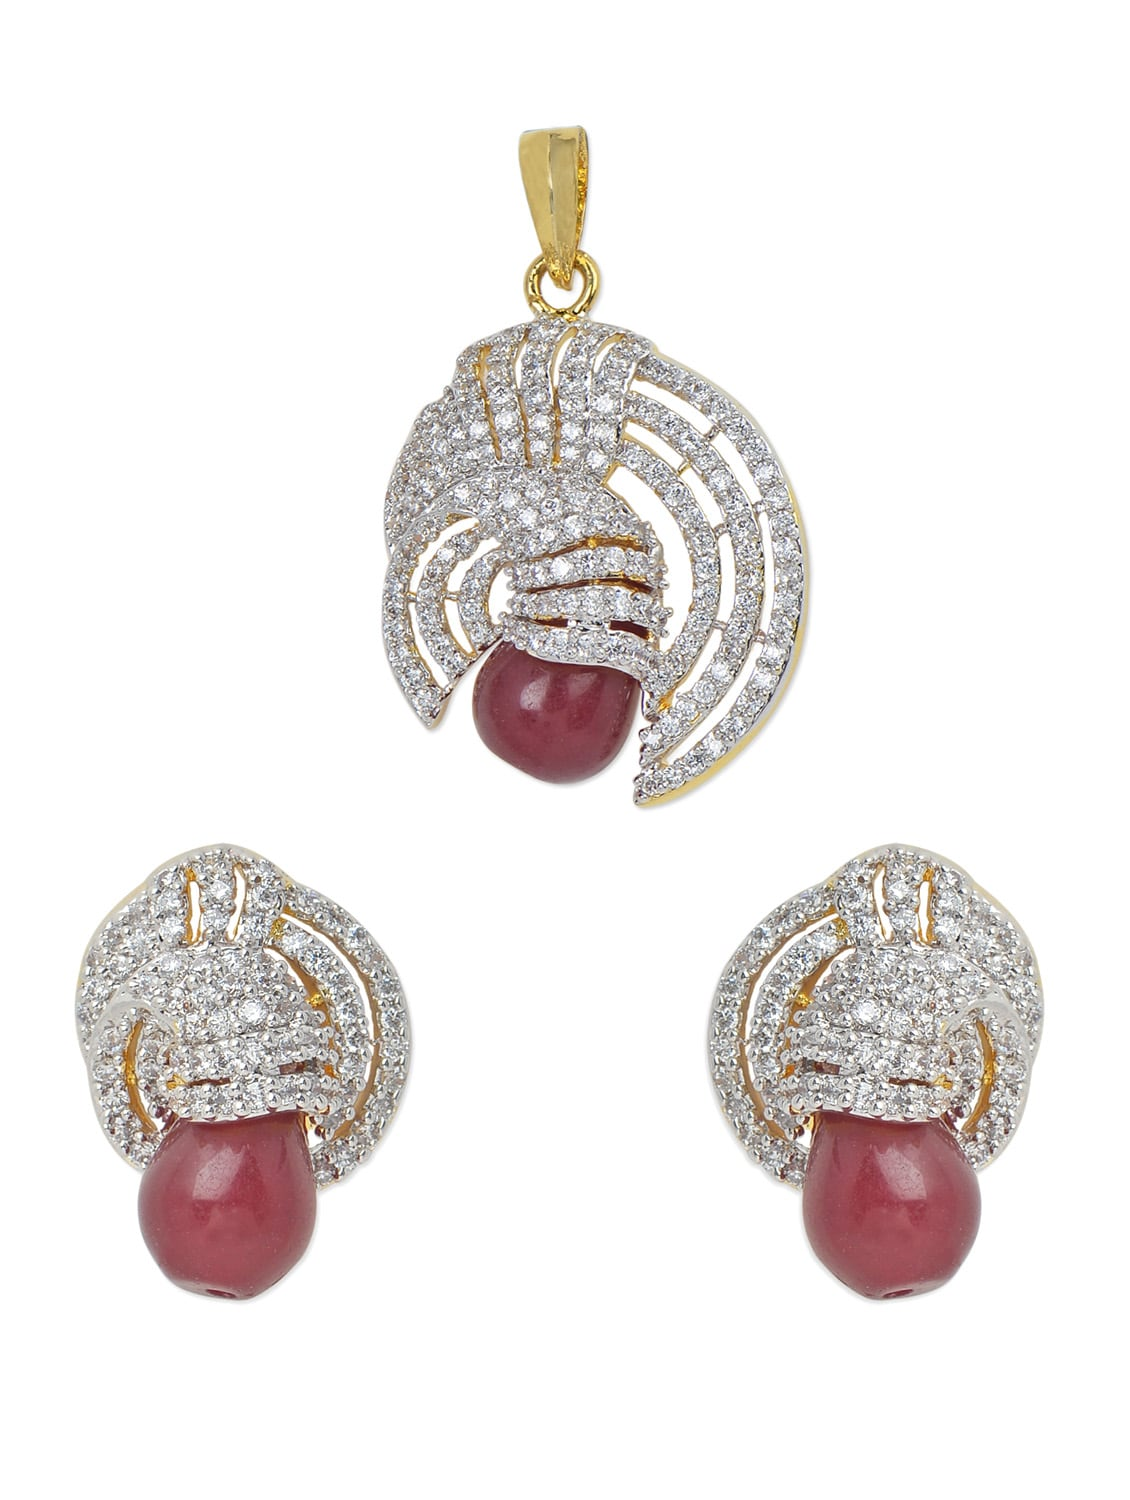 Pendant Set With American Diamond And Ruby Drops - Mirage Creations